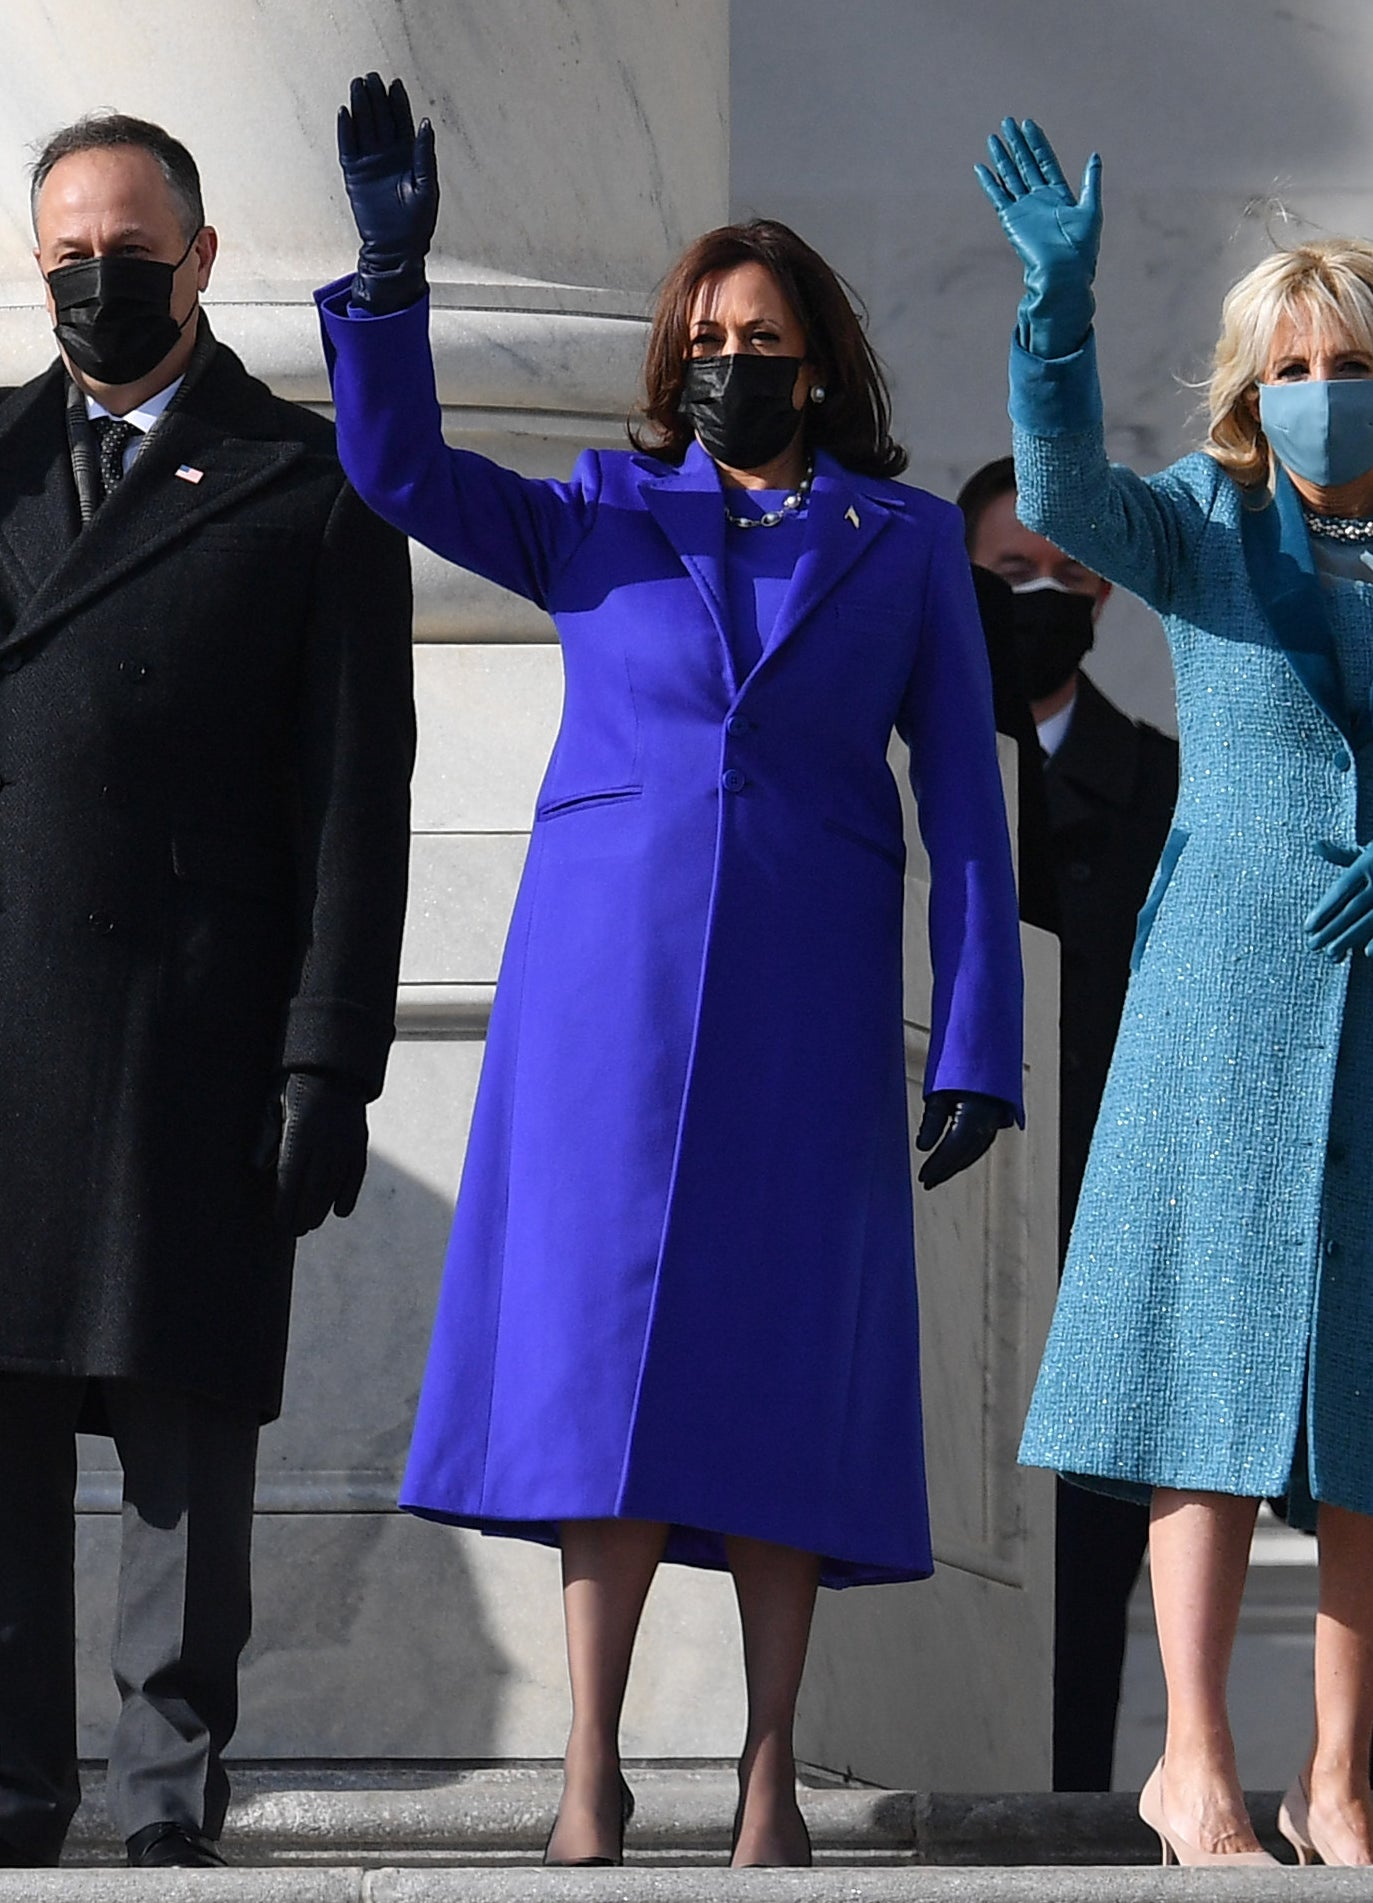 Kamala Harris is a long, deep blue coat with matching shirt, dark blue leather gloves, and black facemask.